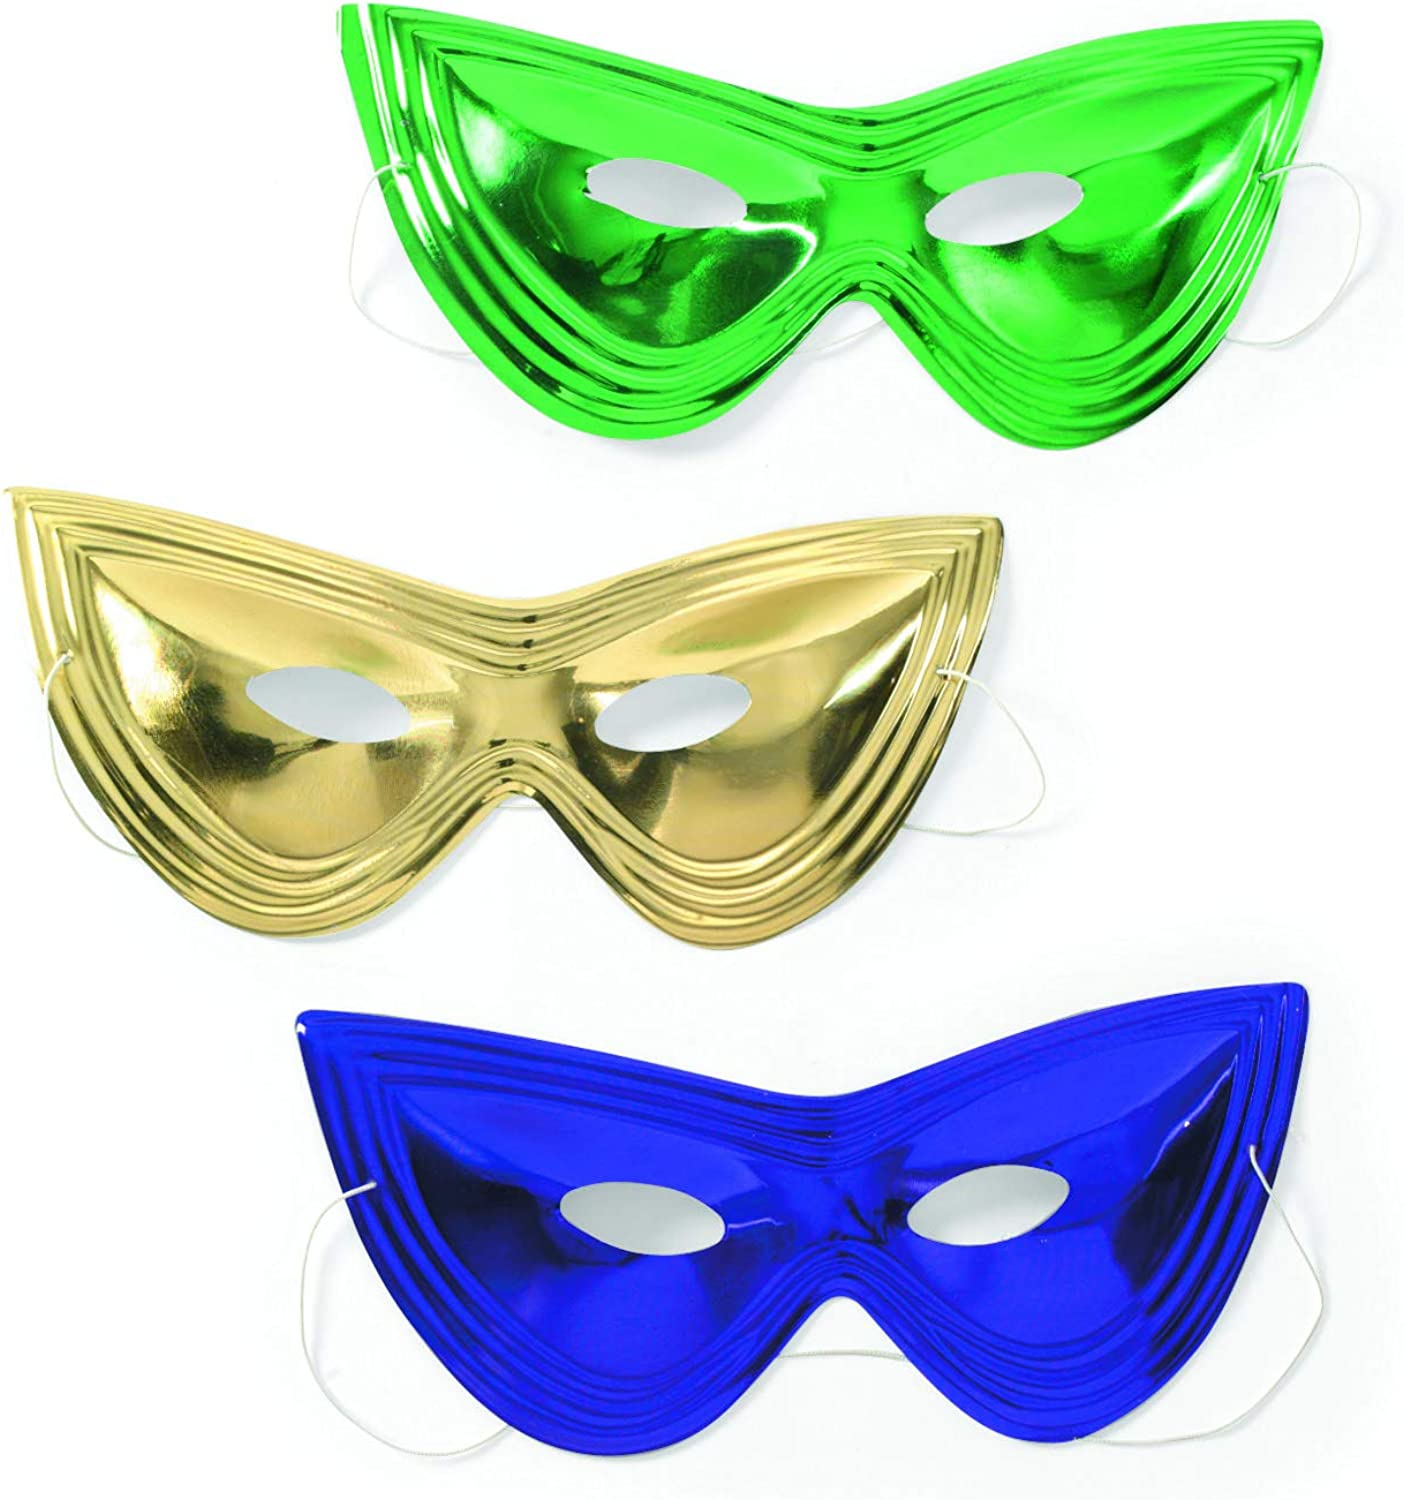 12 Gold Masquerade Masks Costume Wear Gifts Favors Fun Medieval Mardi Gras Party